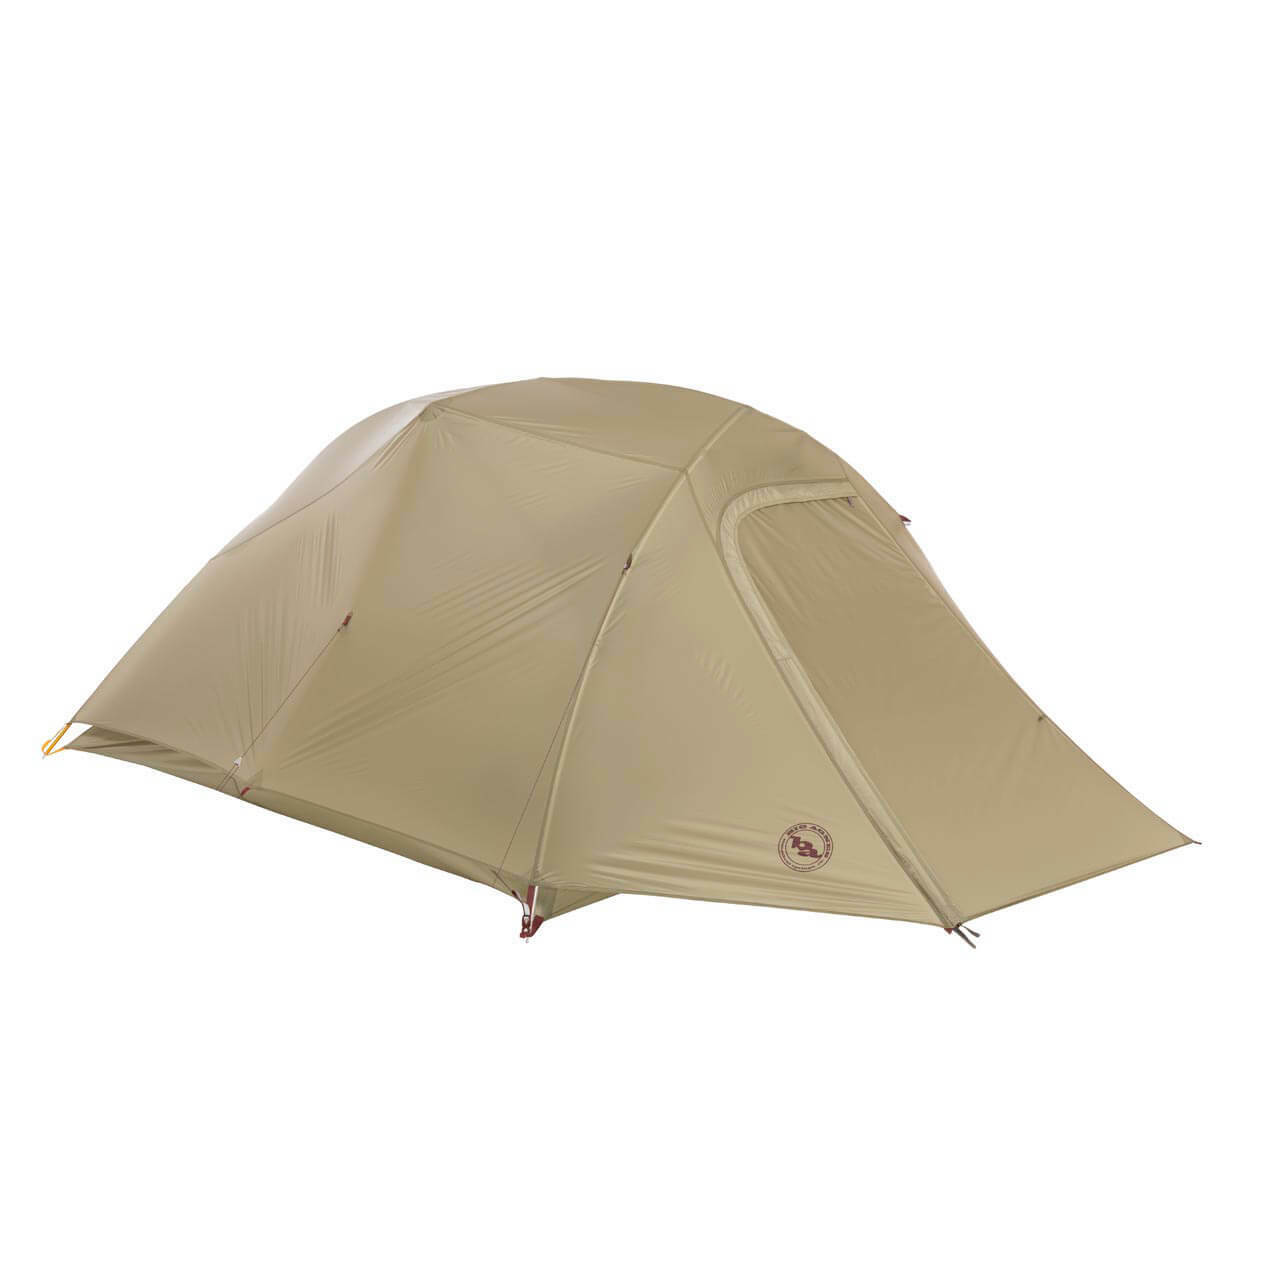 gree Agnes Fly Creek HV UL3 Tent